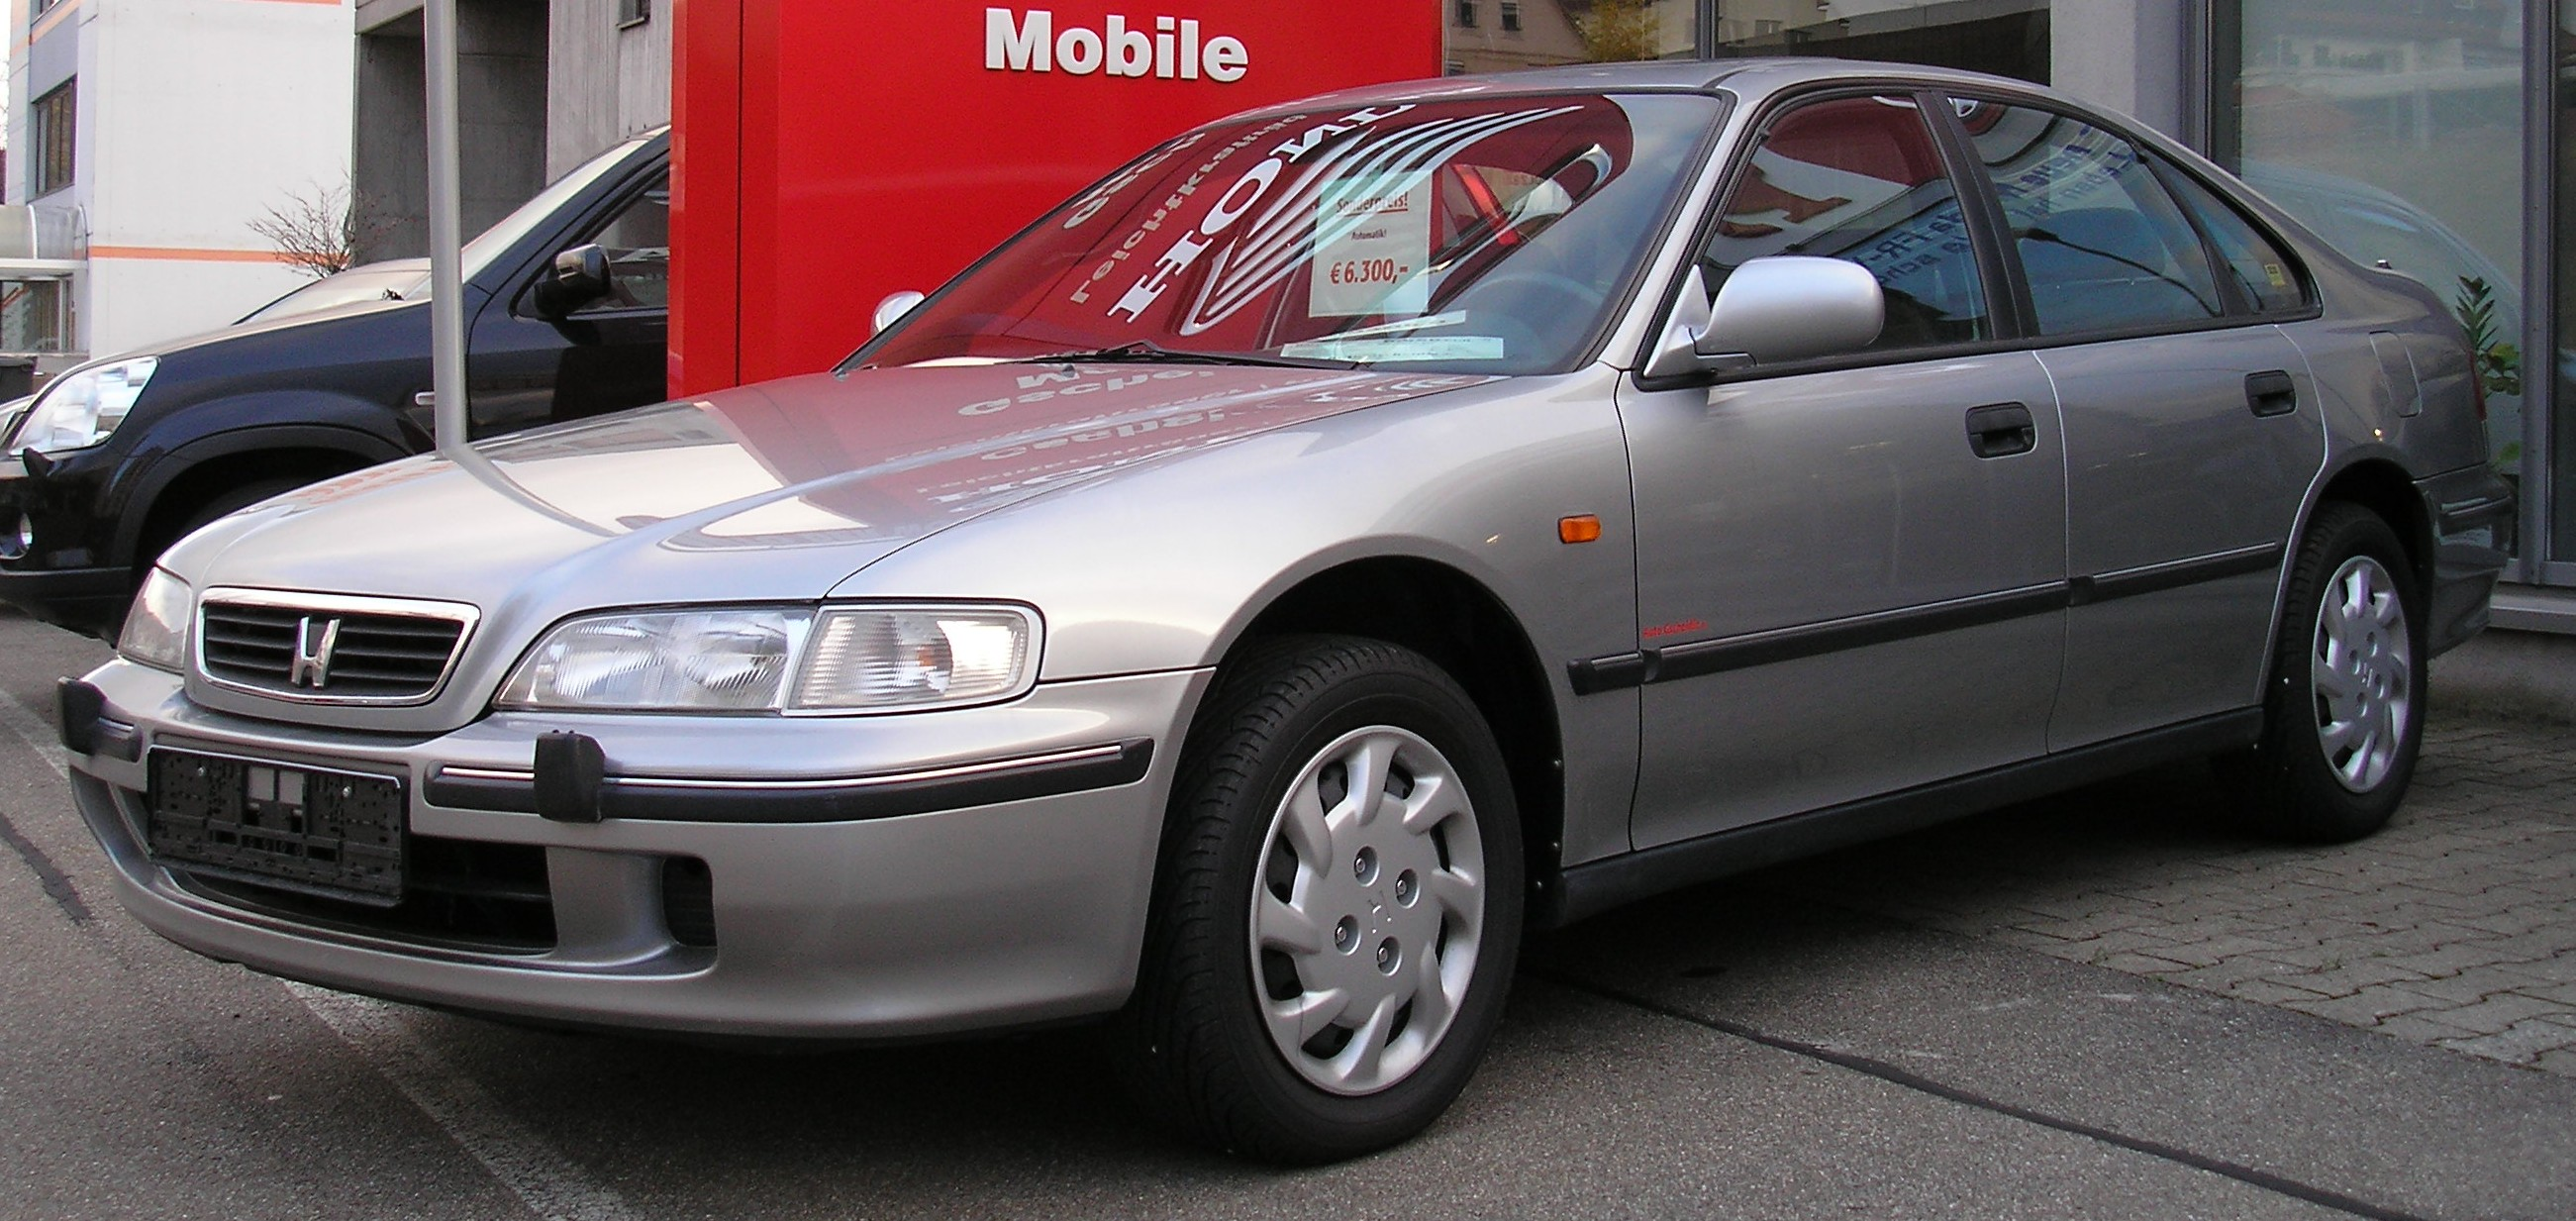 1995 Honda Accord #6